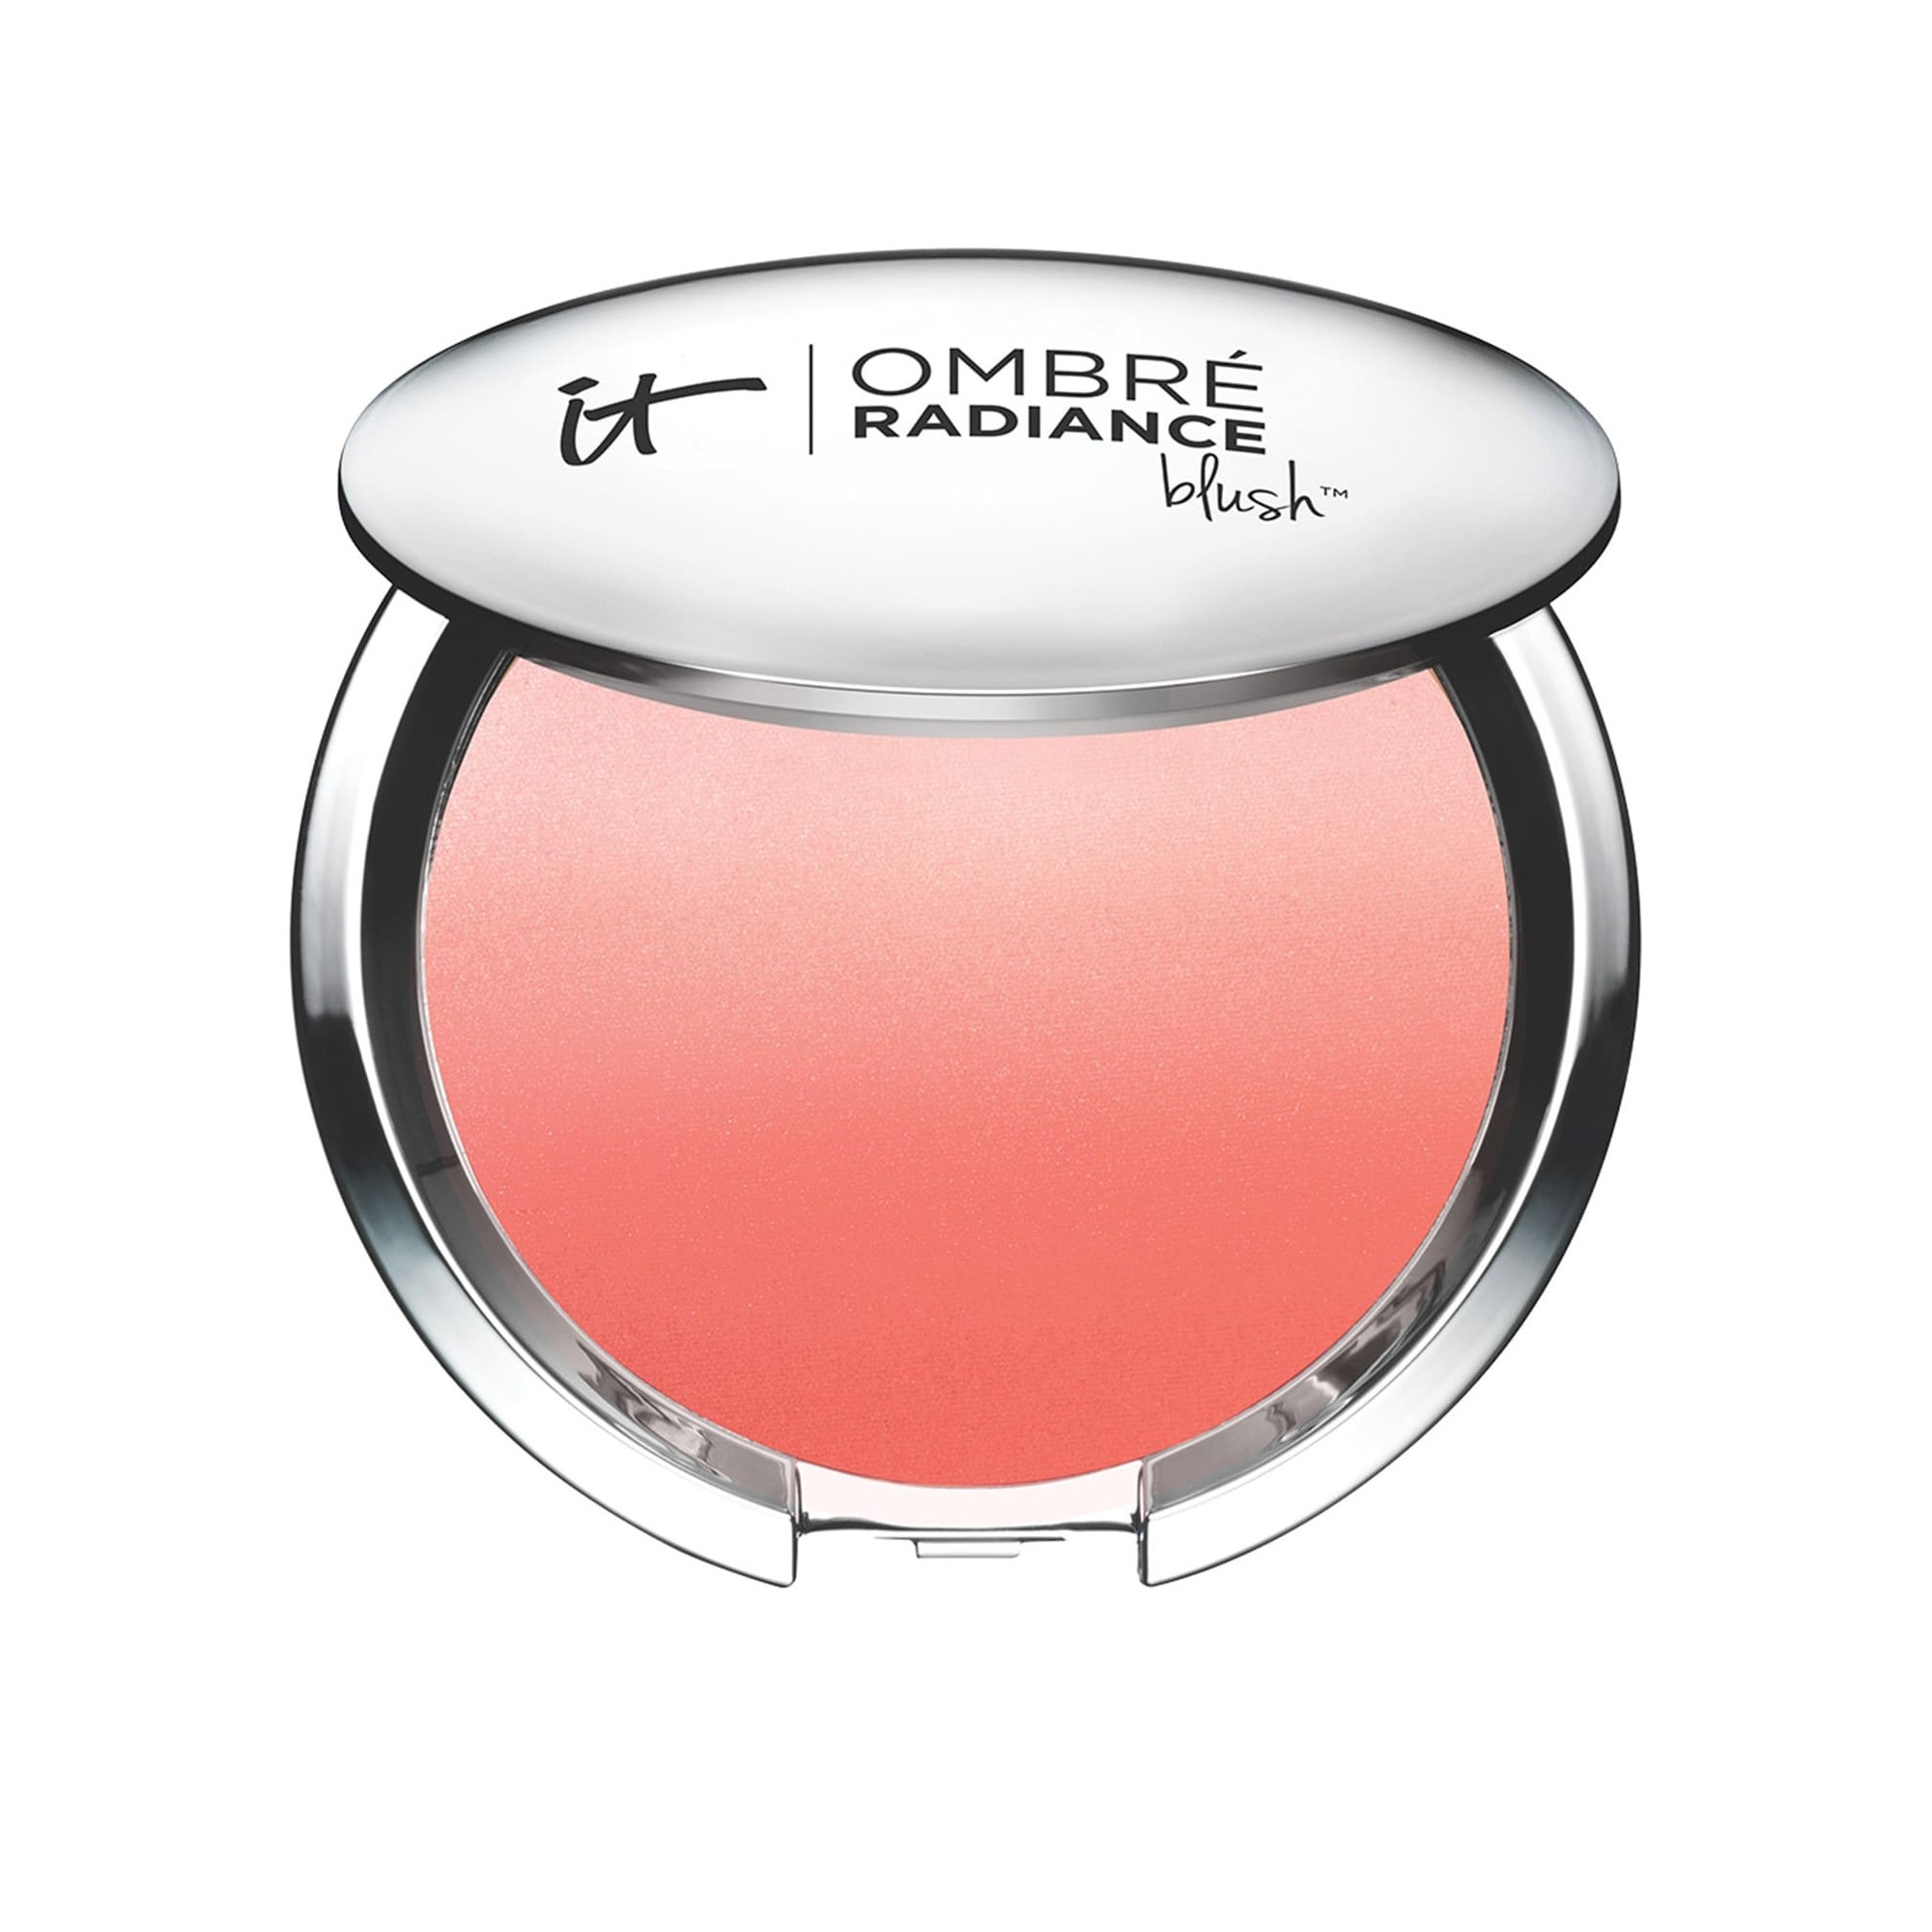 IT Cosmetics Ombré Radiance Blush Coral Flush